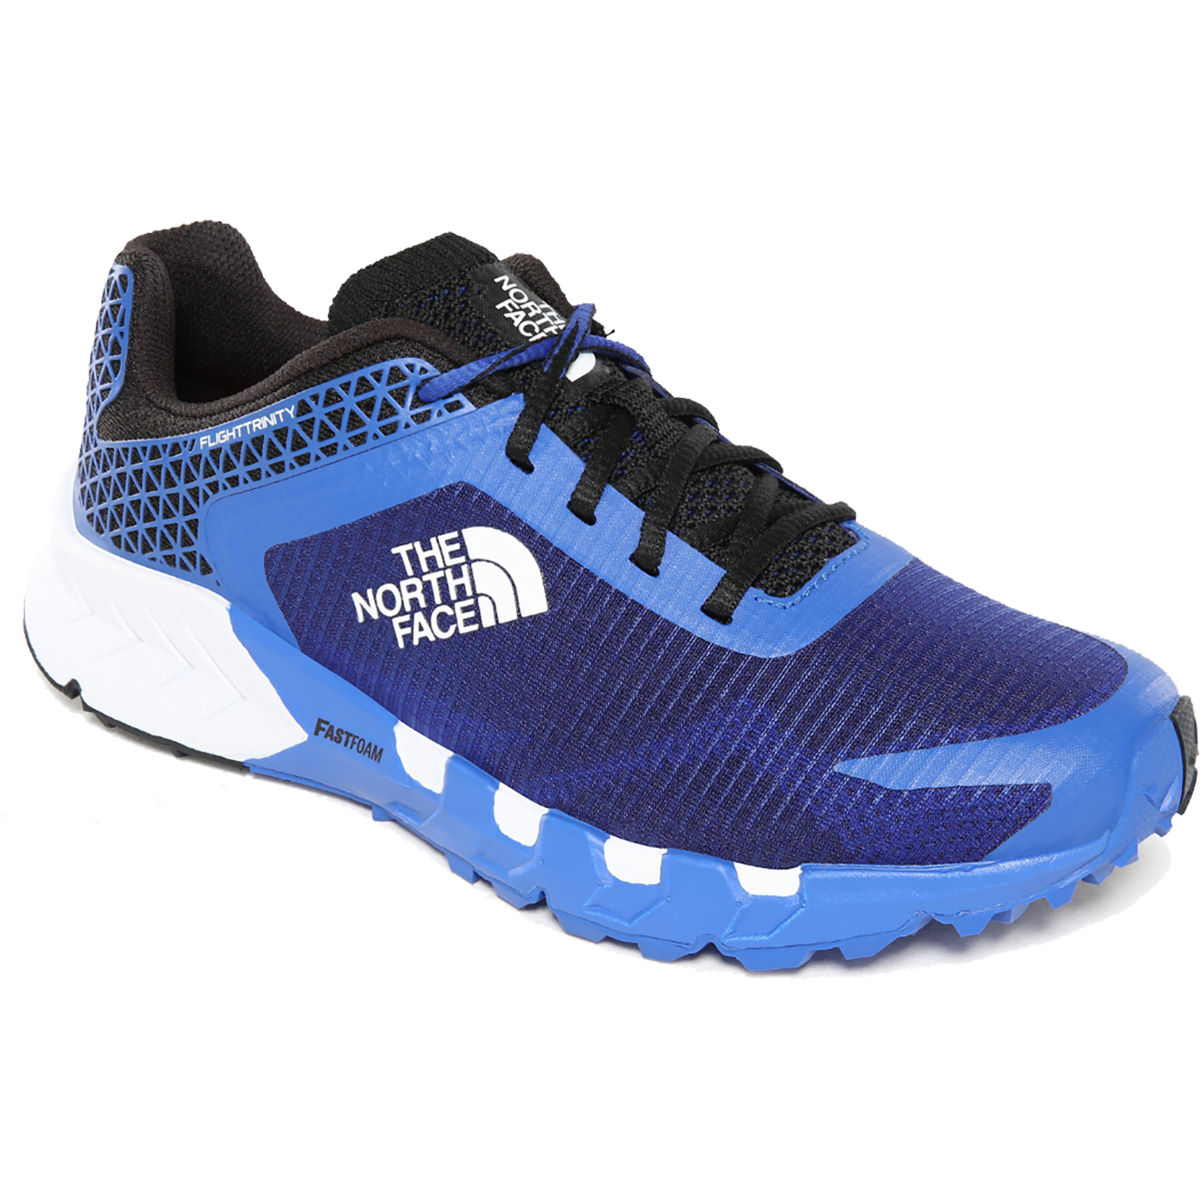 The North Face The North Face Womens Flight Trinity Shoes   Trail Shoes